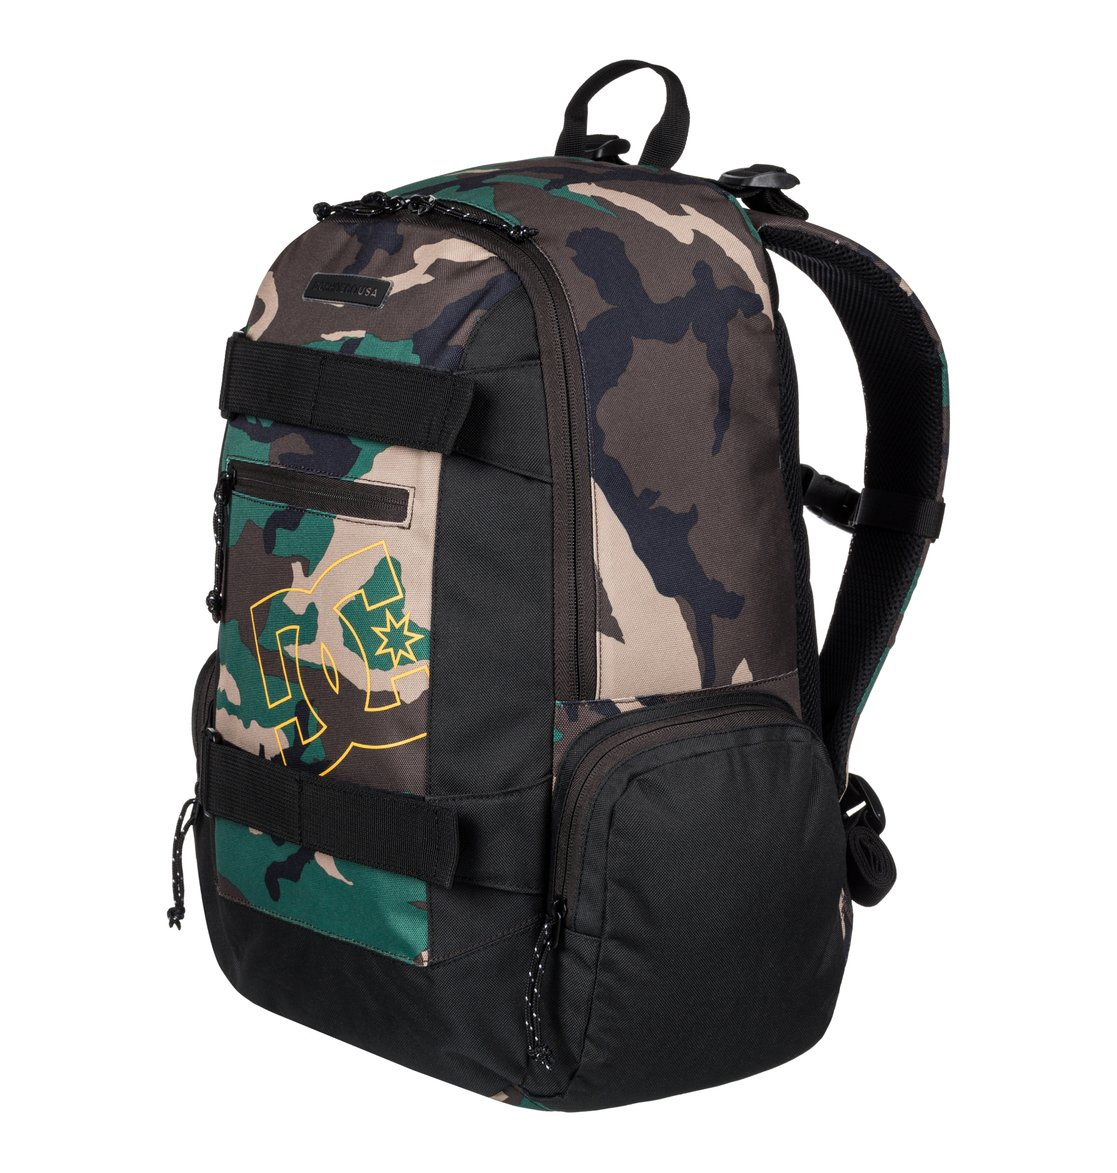 1 DC MOCHILA THE BREED GRW6 IMP BR78741739 DC Shoes 05ea8ccdb9c